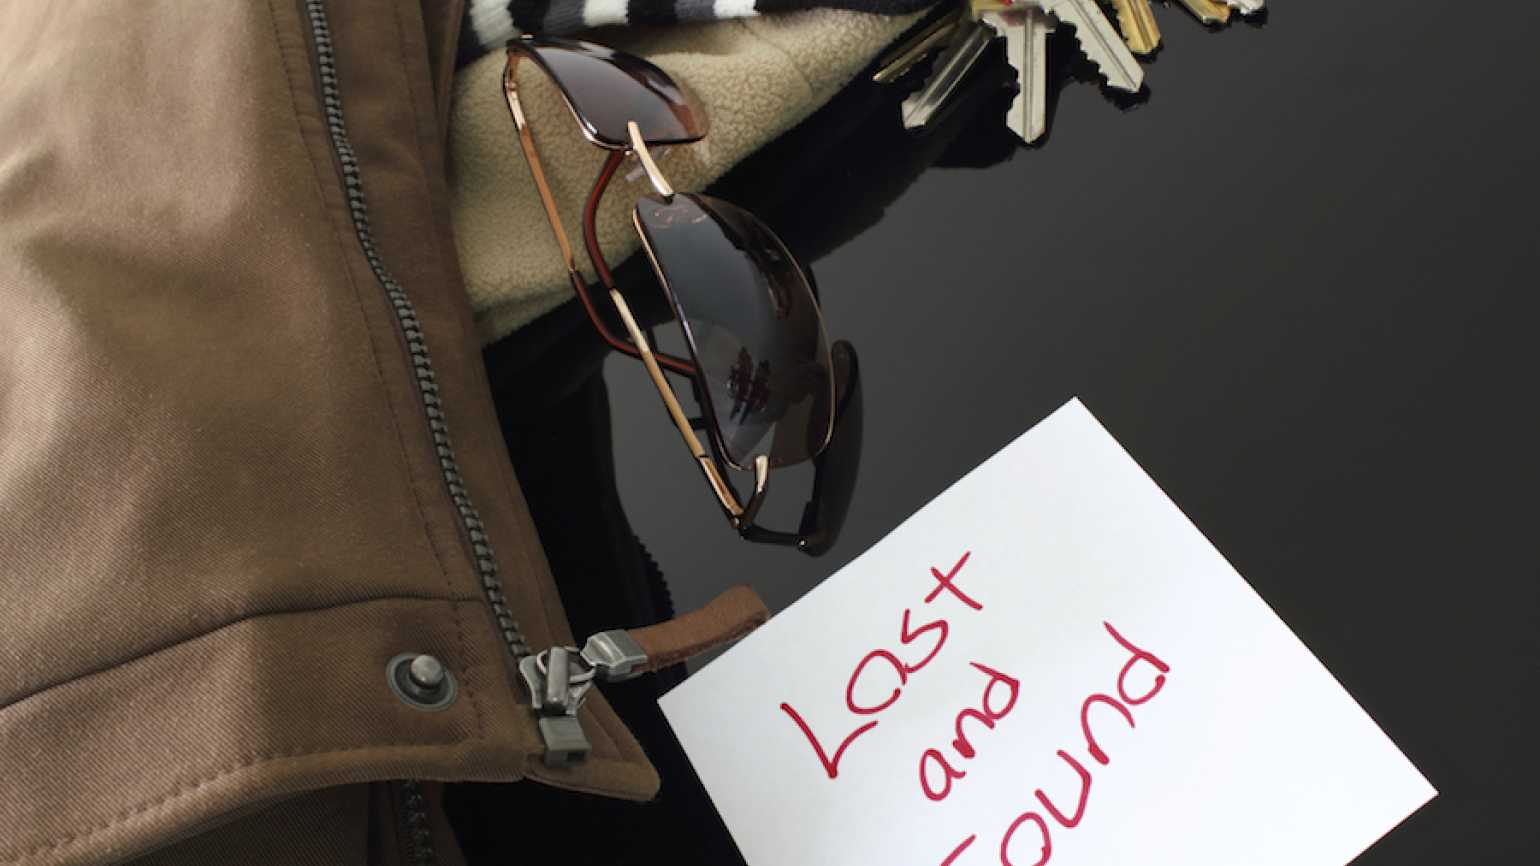 Lost and found photo by Mr. Incredible, Thinkstock.